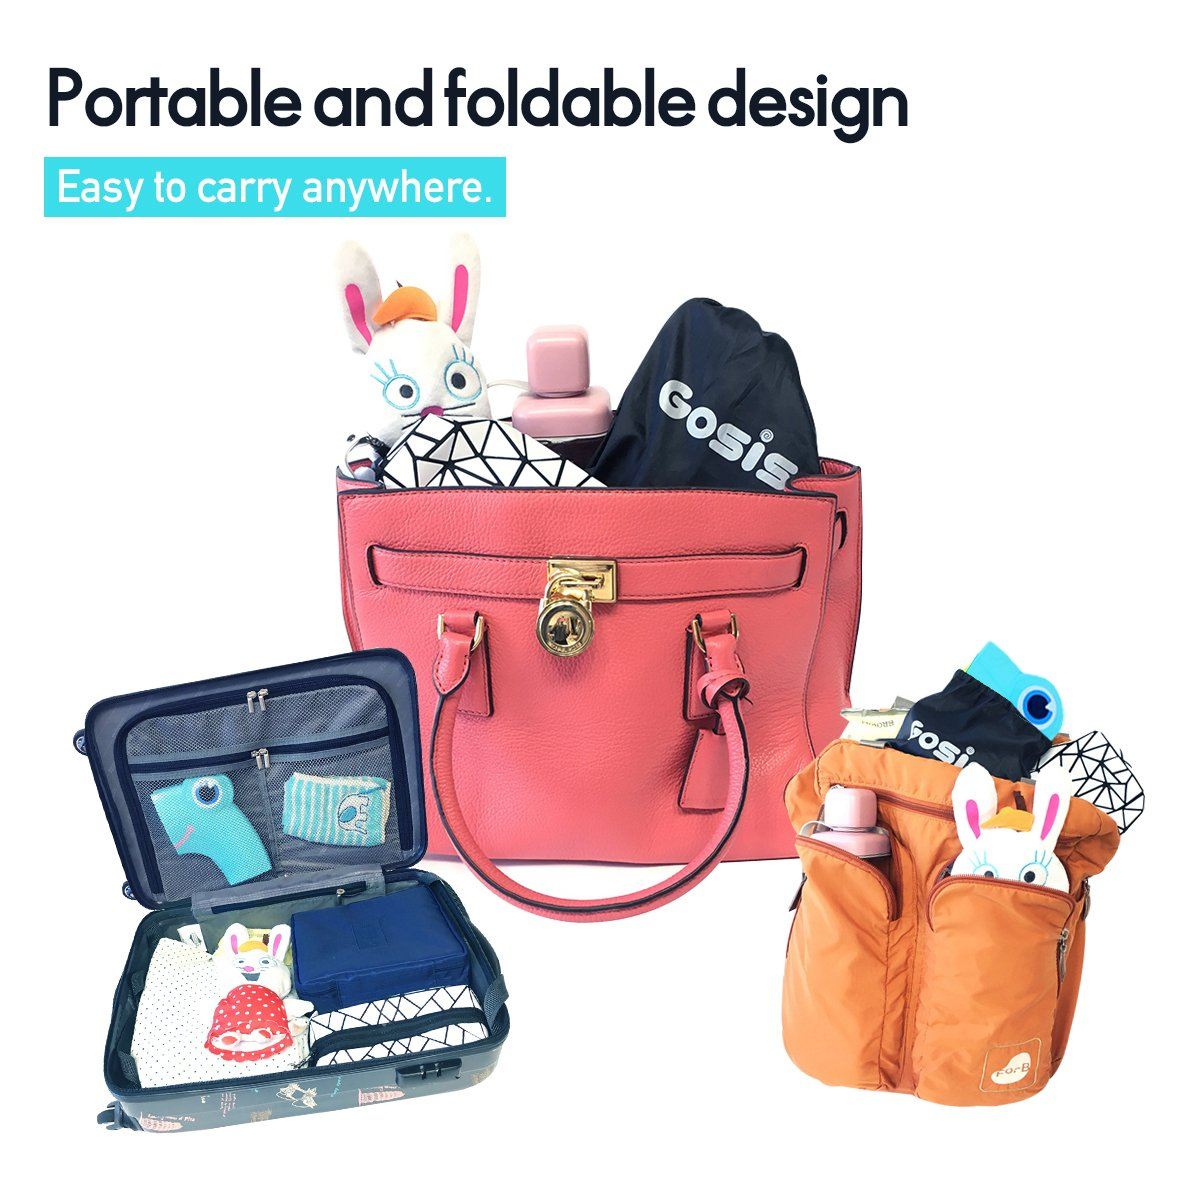 Gosis Folding Travel Portable Toilet Potty Training Seat Covers with Carry Bag for Toddler, Baby and Kids (Sky Blue)